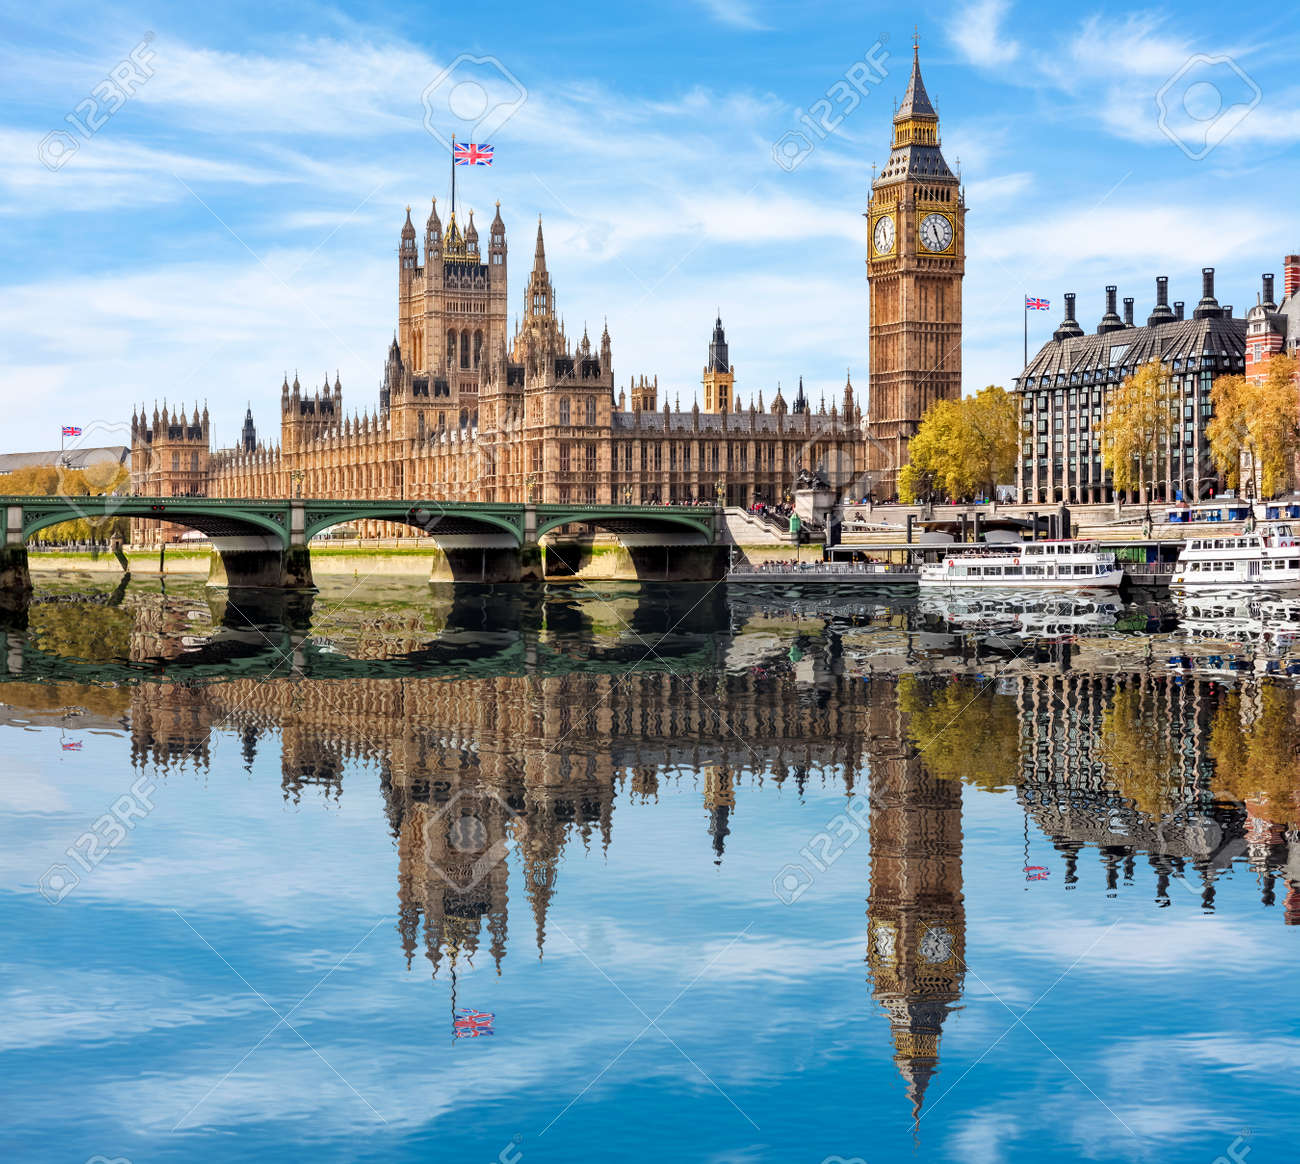 Houses of Parliament and Big Ben, London, UK - 136950141